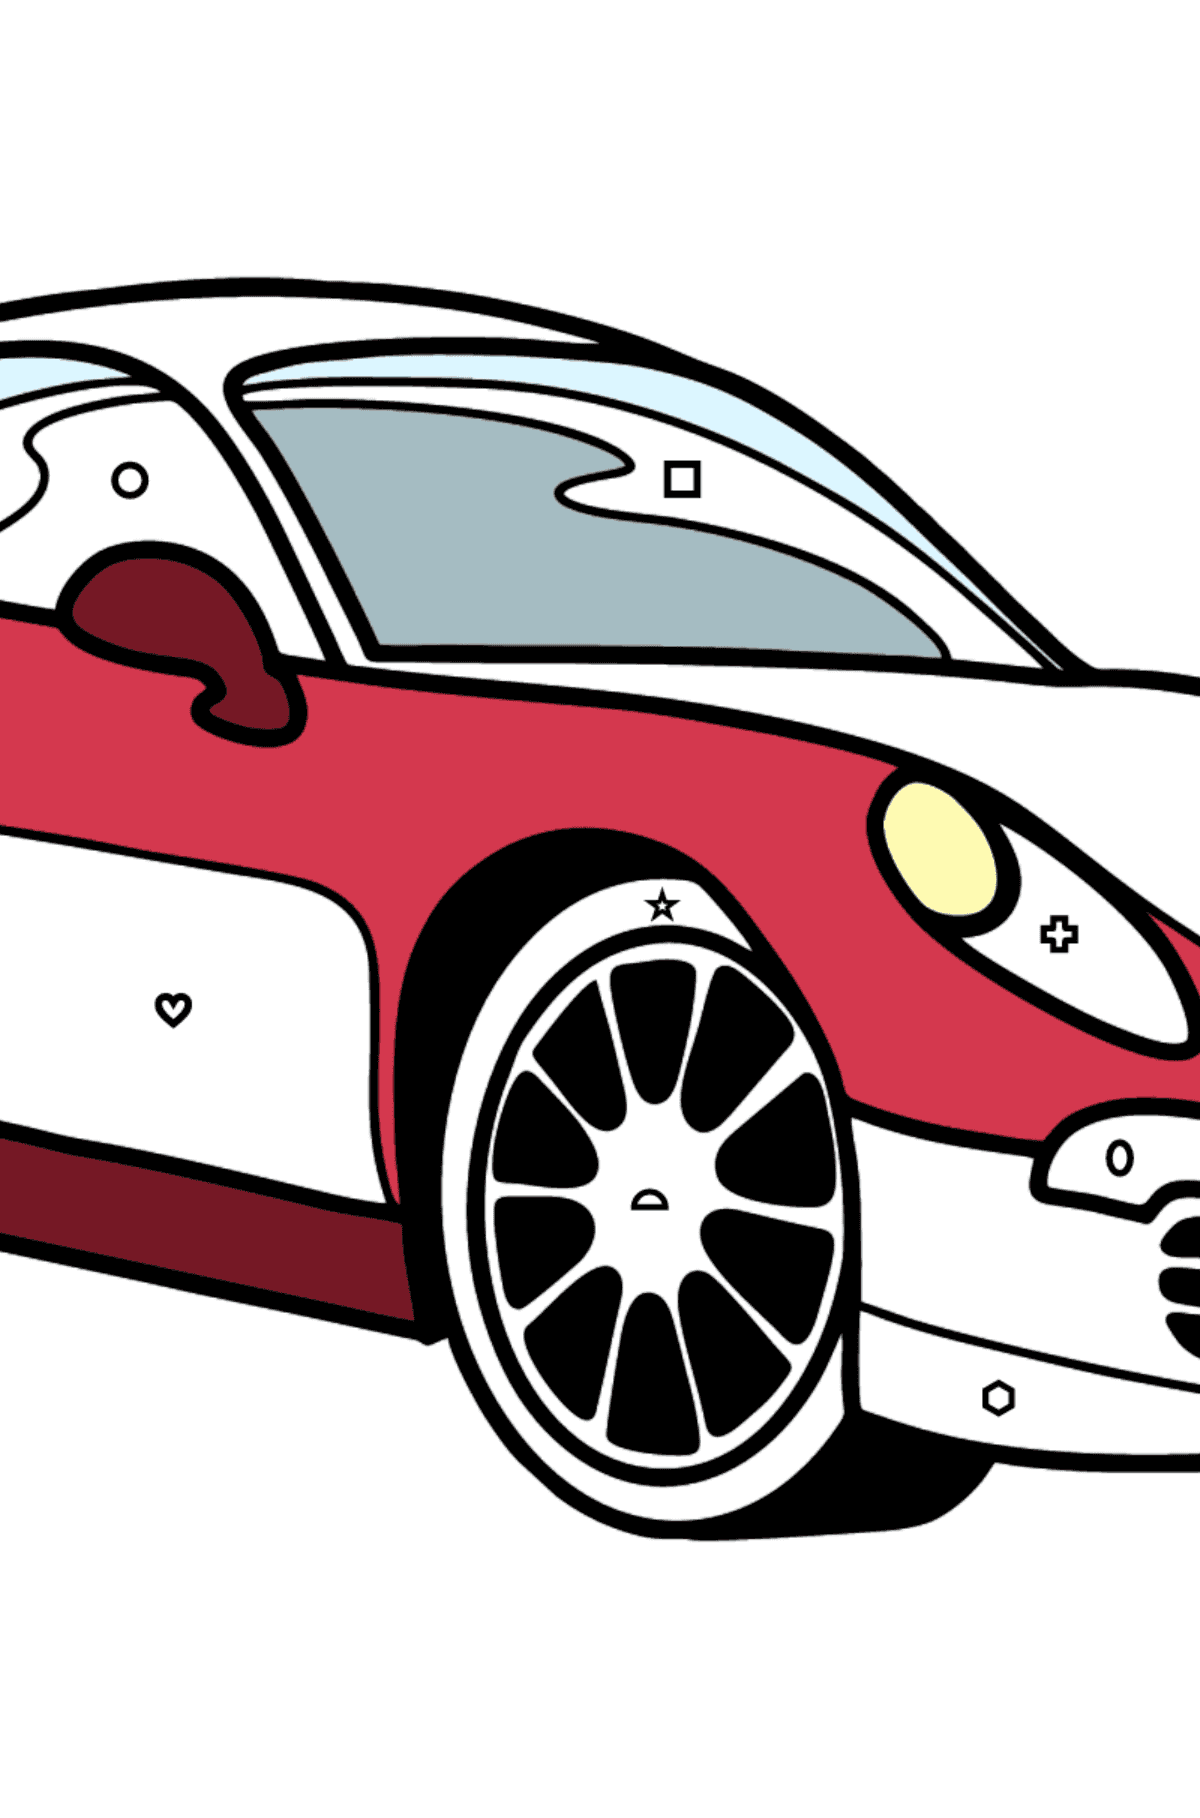 Porsche Cayman Sports Car coloring page - Coloring by Geometric Shapes for Kids